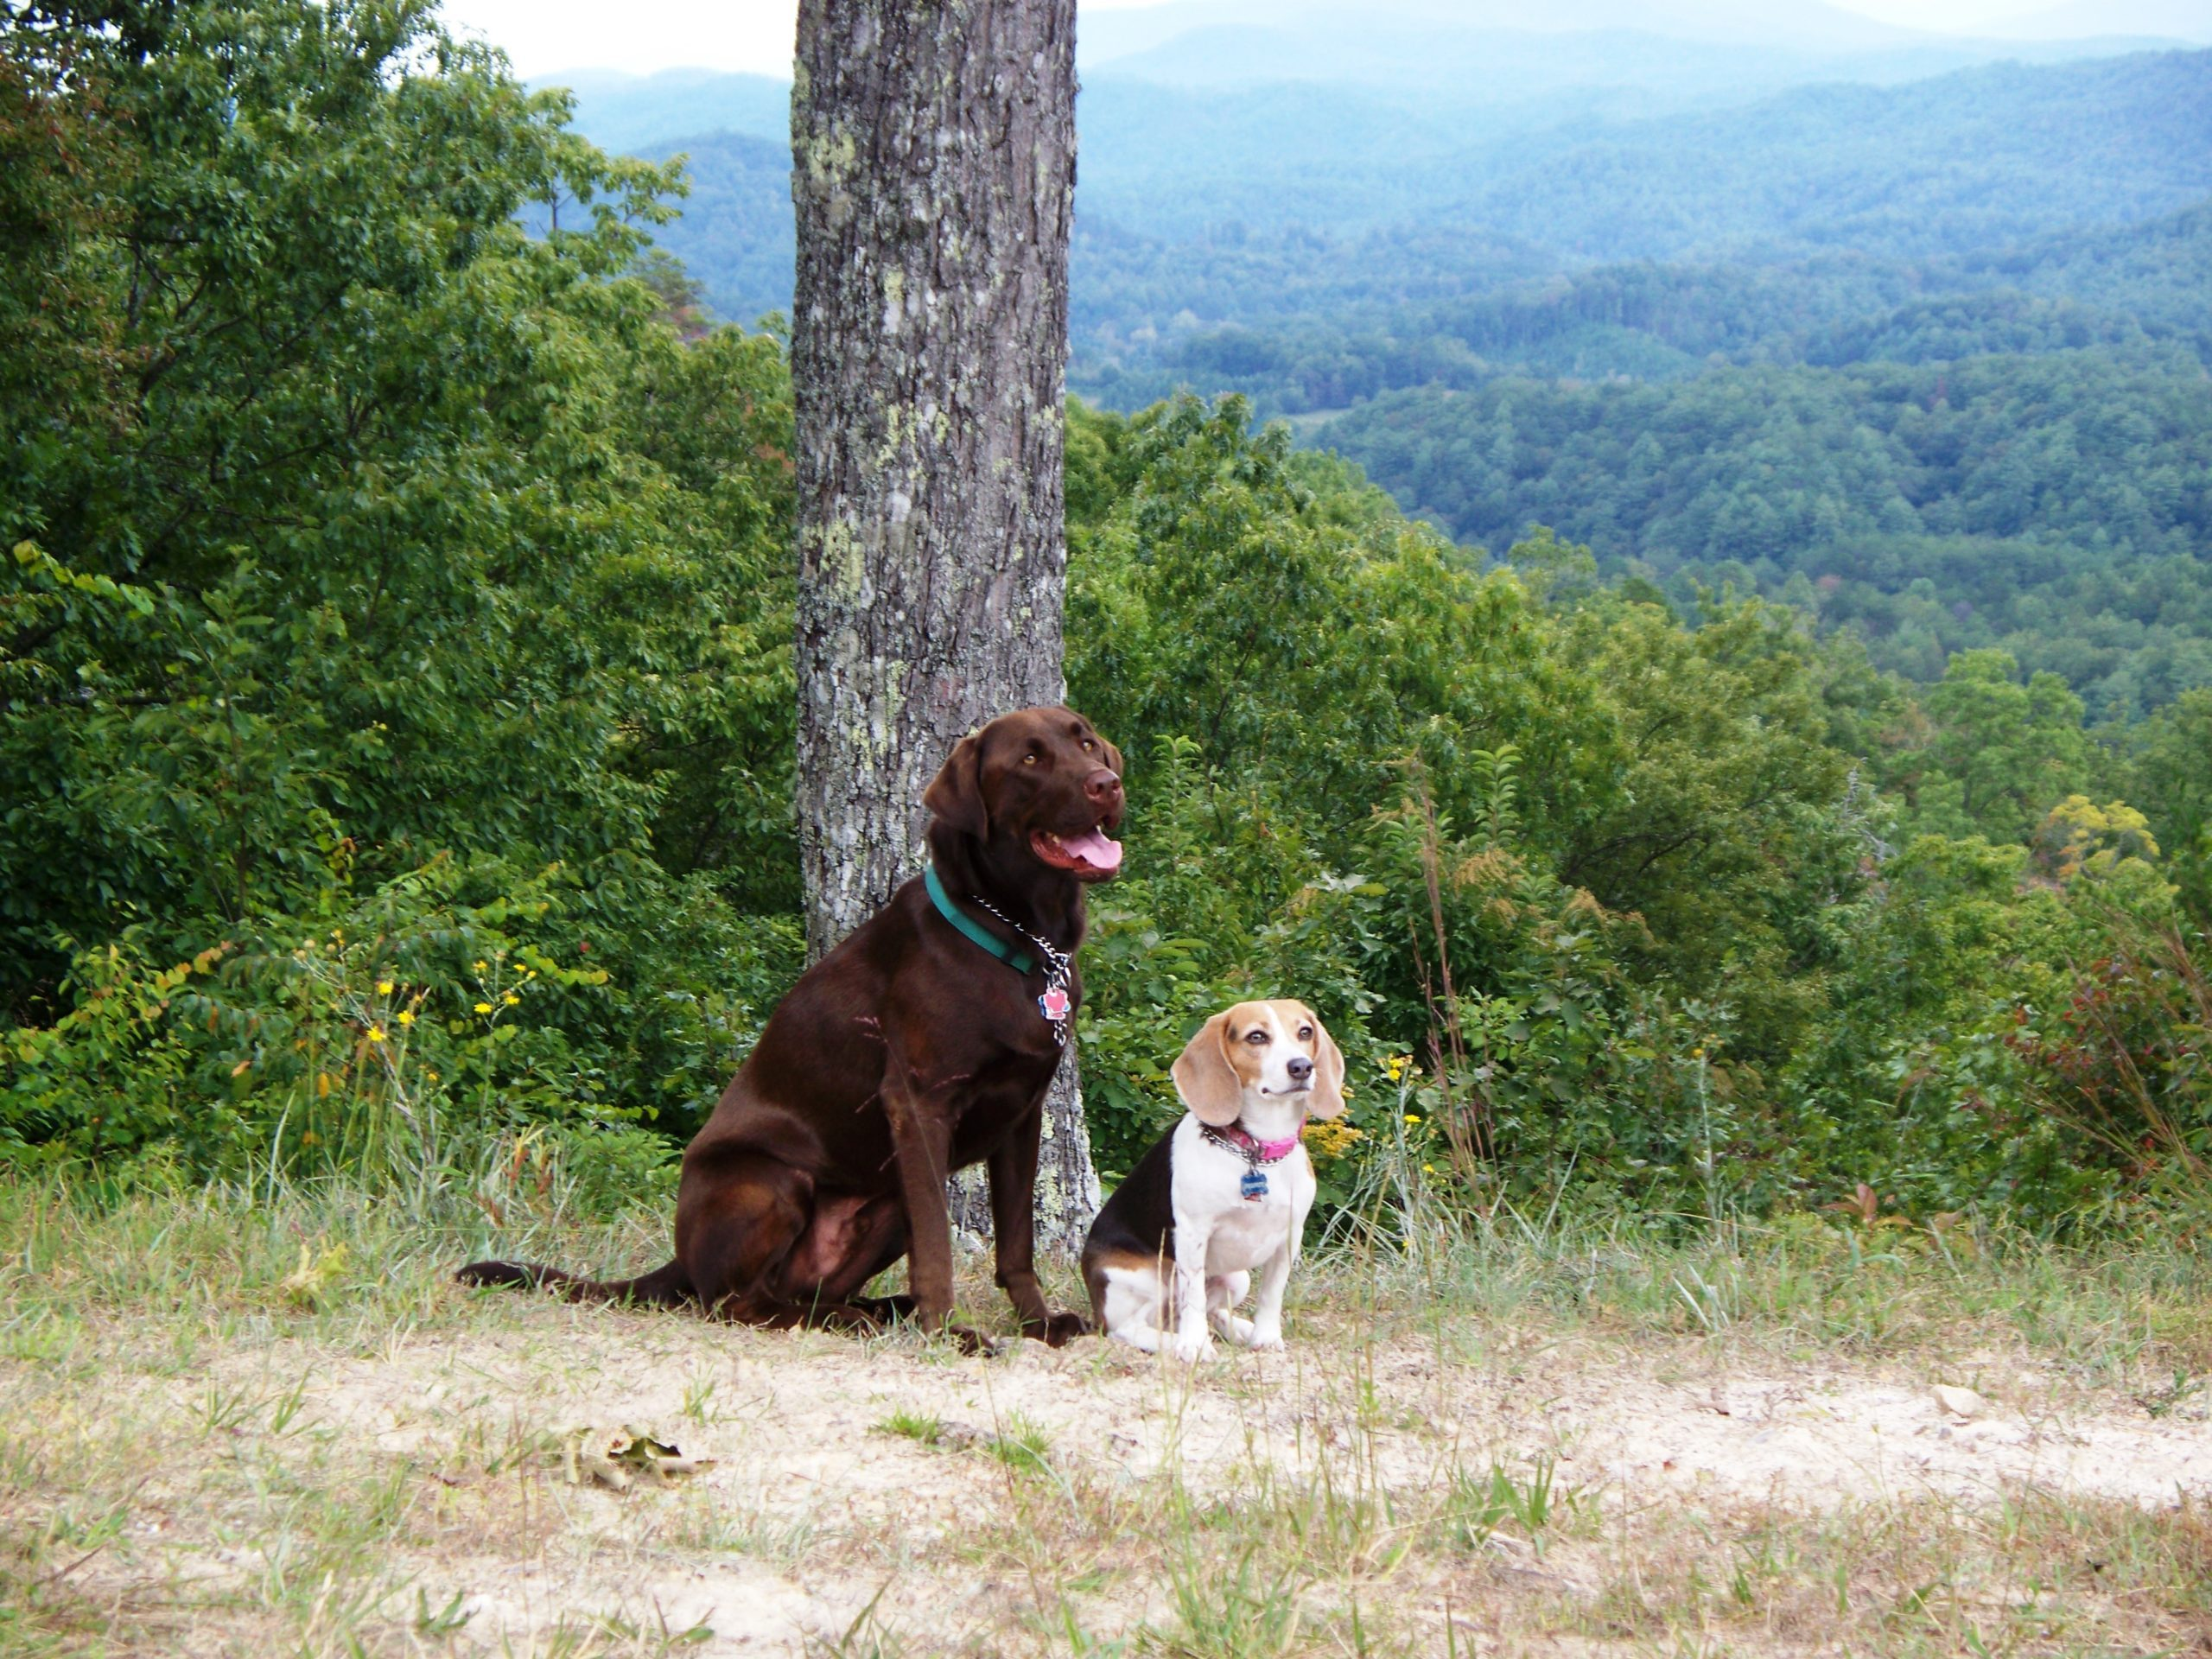 lab and beagle dogs pose together on a grassy hiking trail